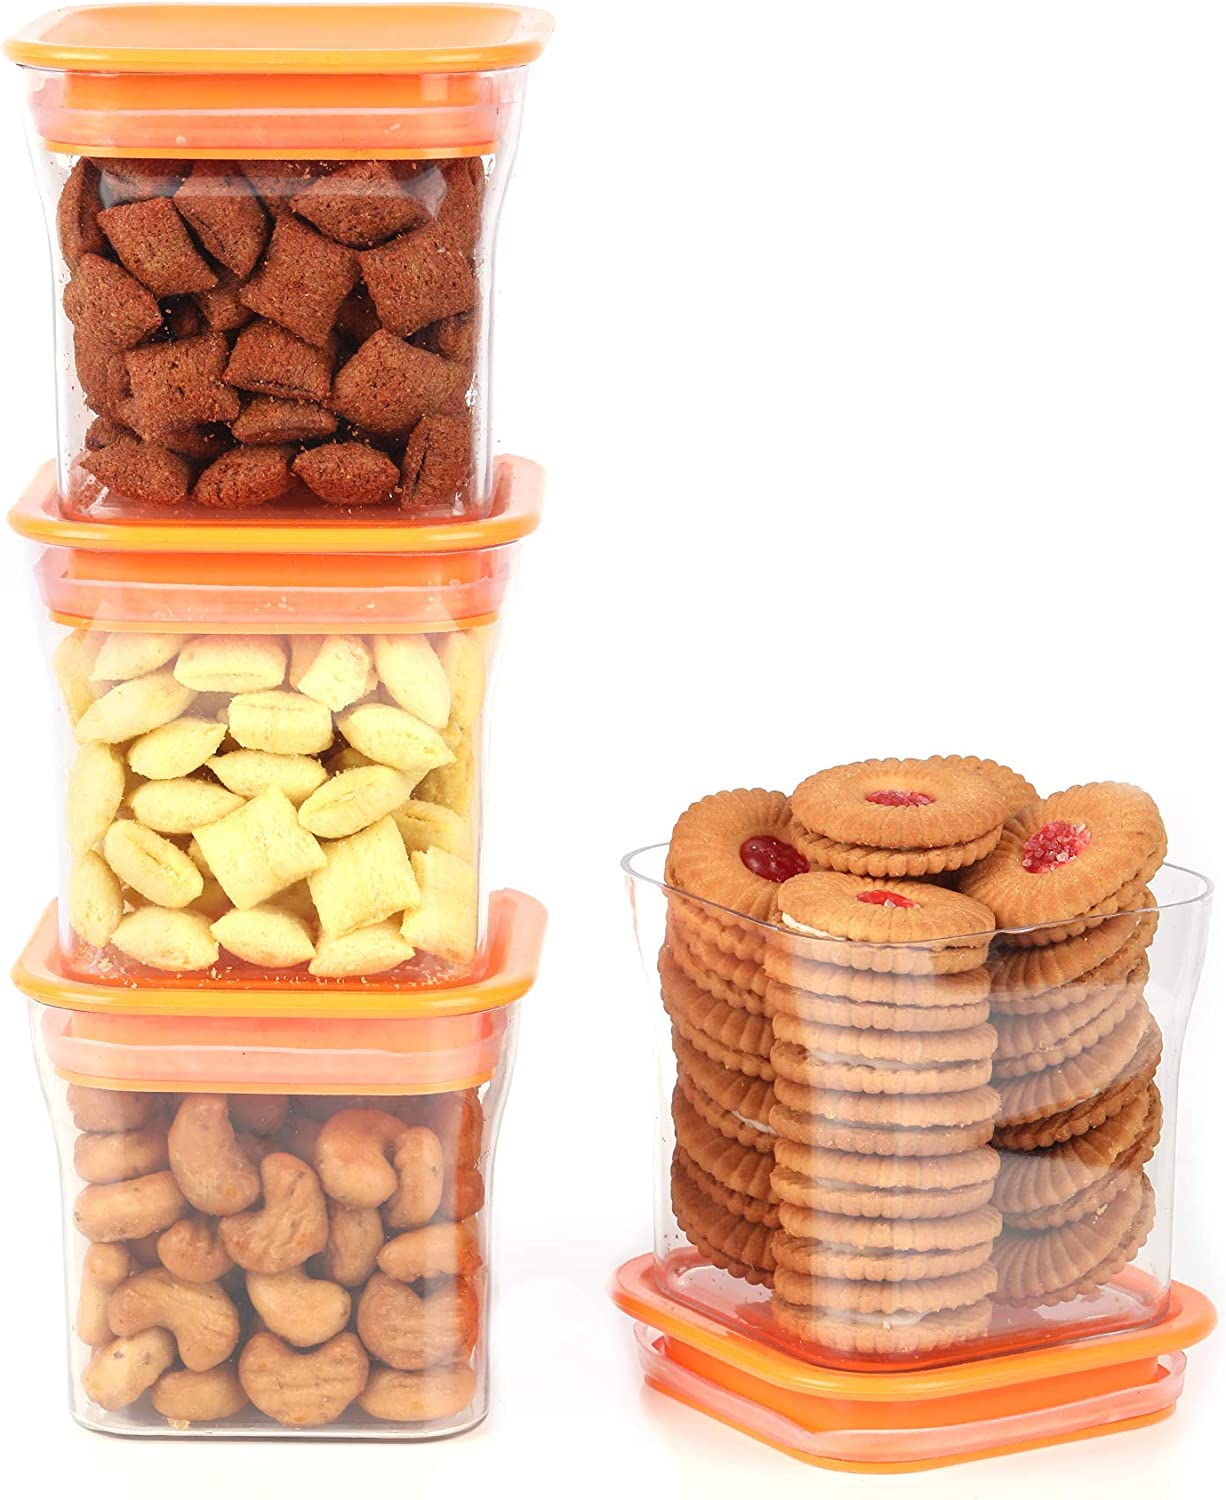 EQUALITY OVERSEAS Kitkat Air Tight Jar Food Storage Container Set for Rice, Dal, Atta, Flour, Cereals, Pulses, Snacks, Stackable Spice (4 PCS 600ML)